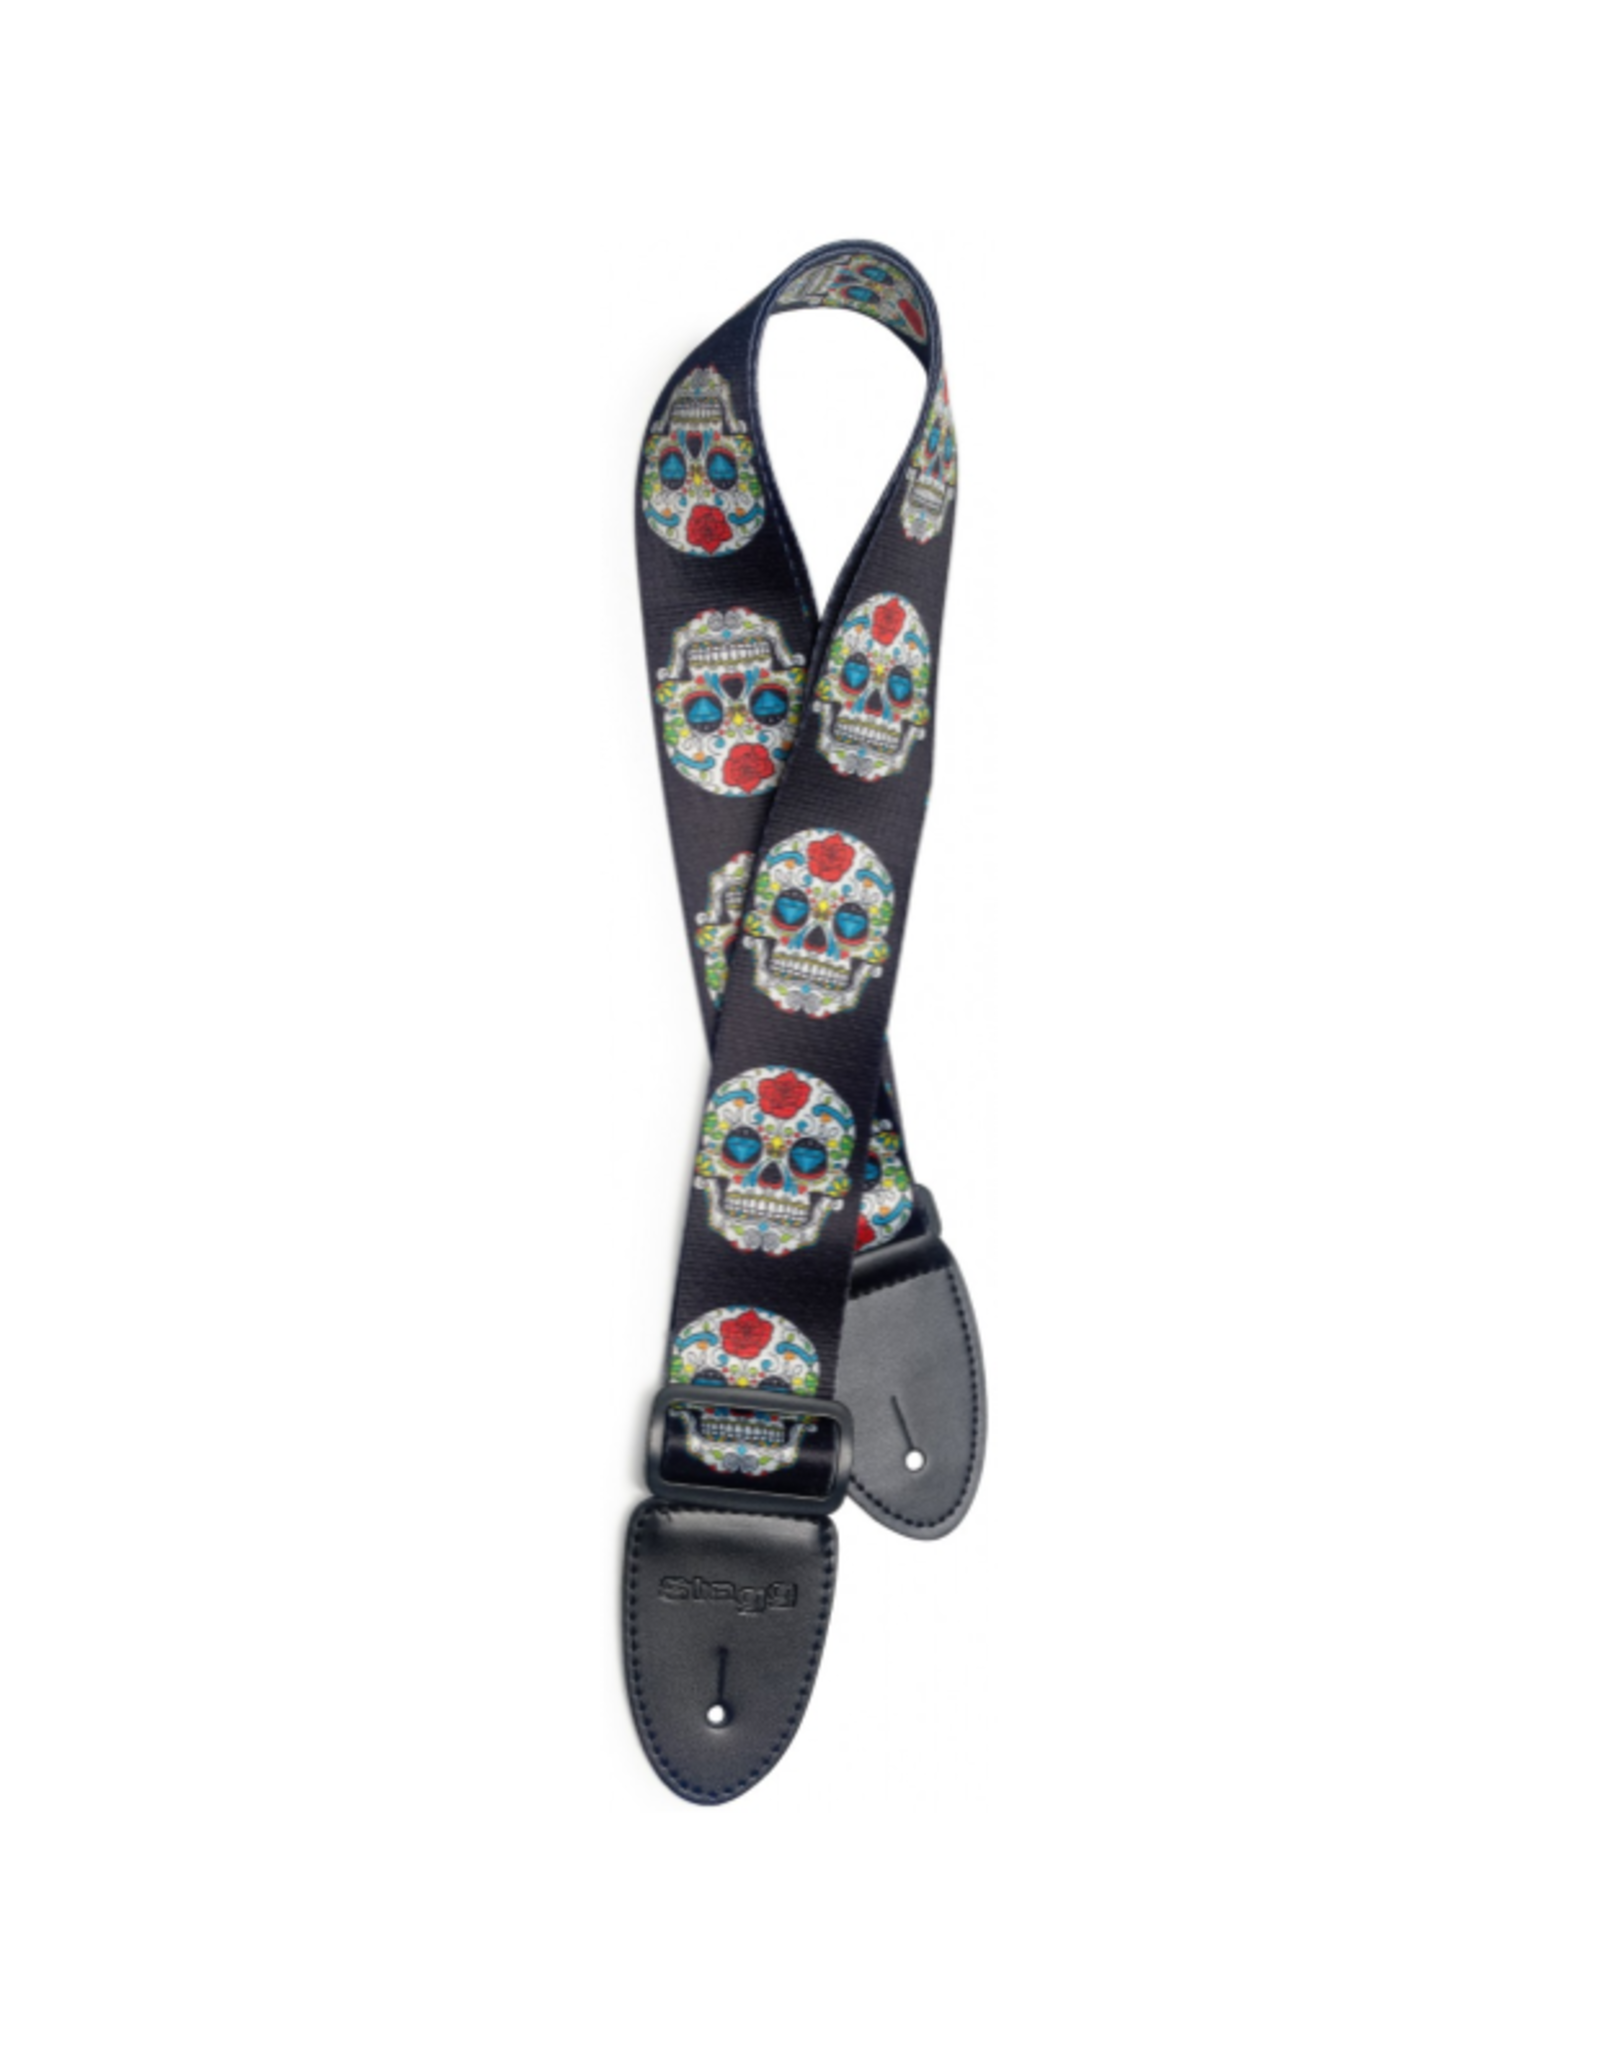 Stagg Stagg Terylene Guitar Strap Mexican Skull Red Rose Pattern